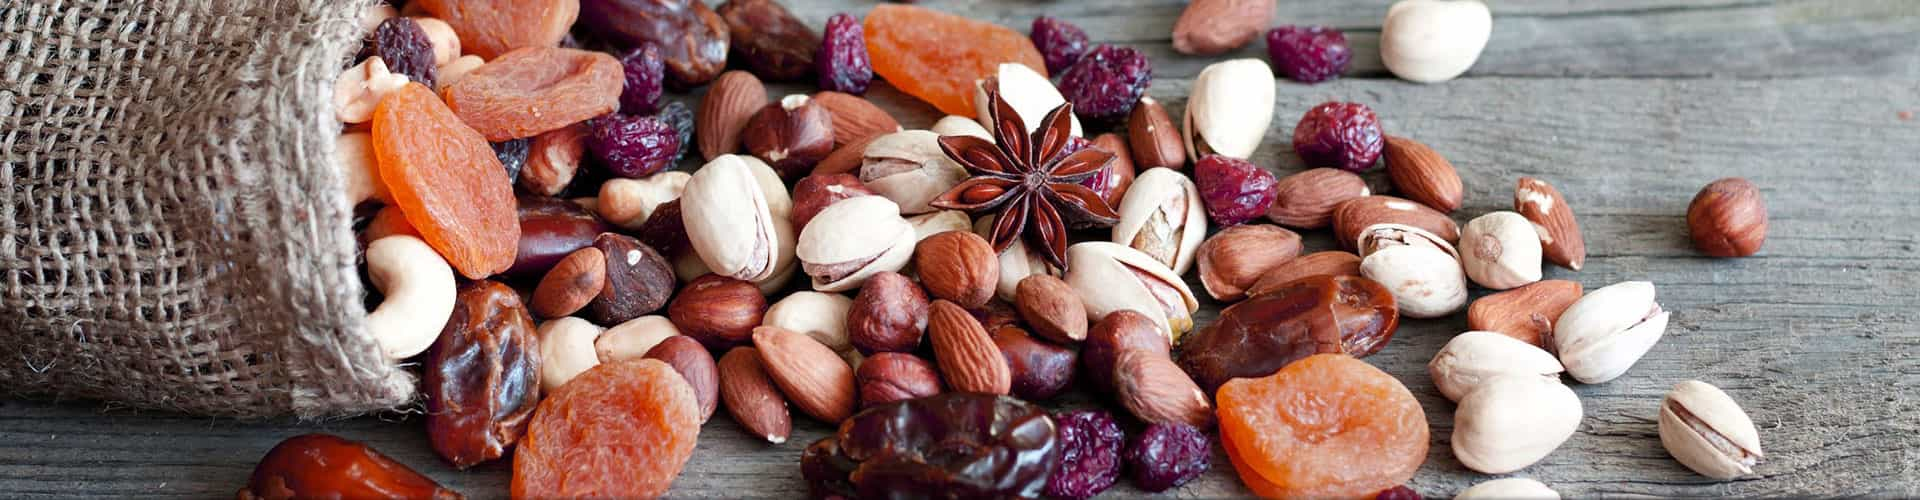 Reliable dried fruit and nuts wholesalers | MultiSnack